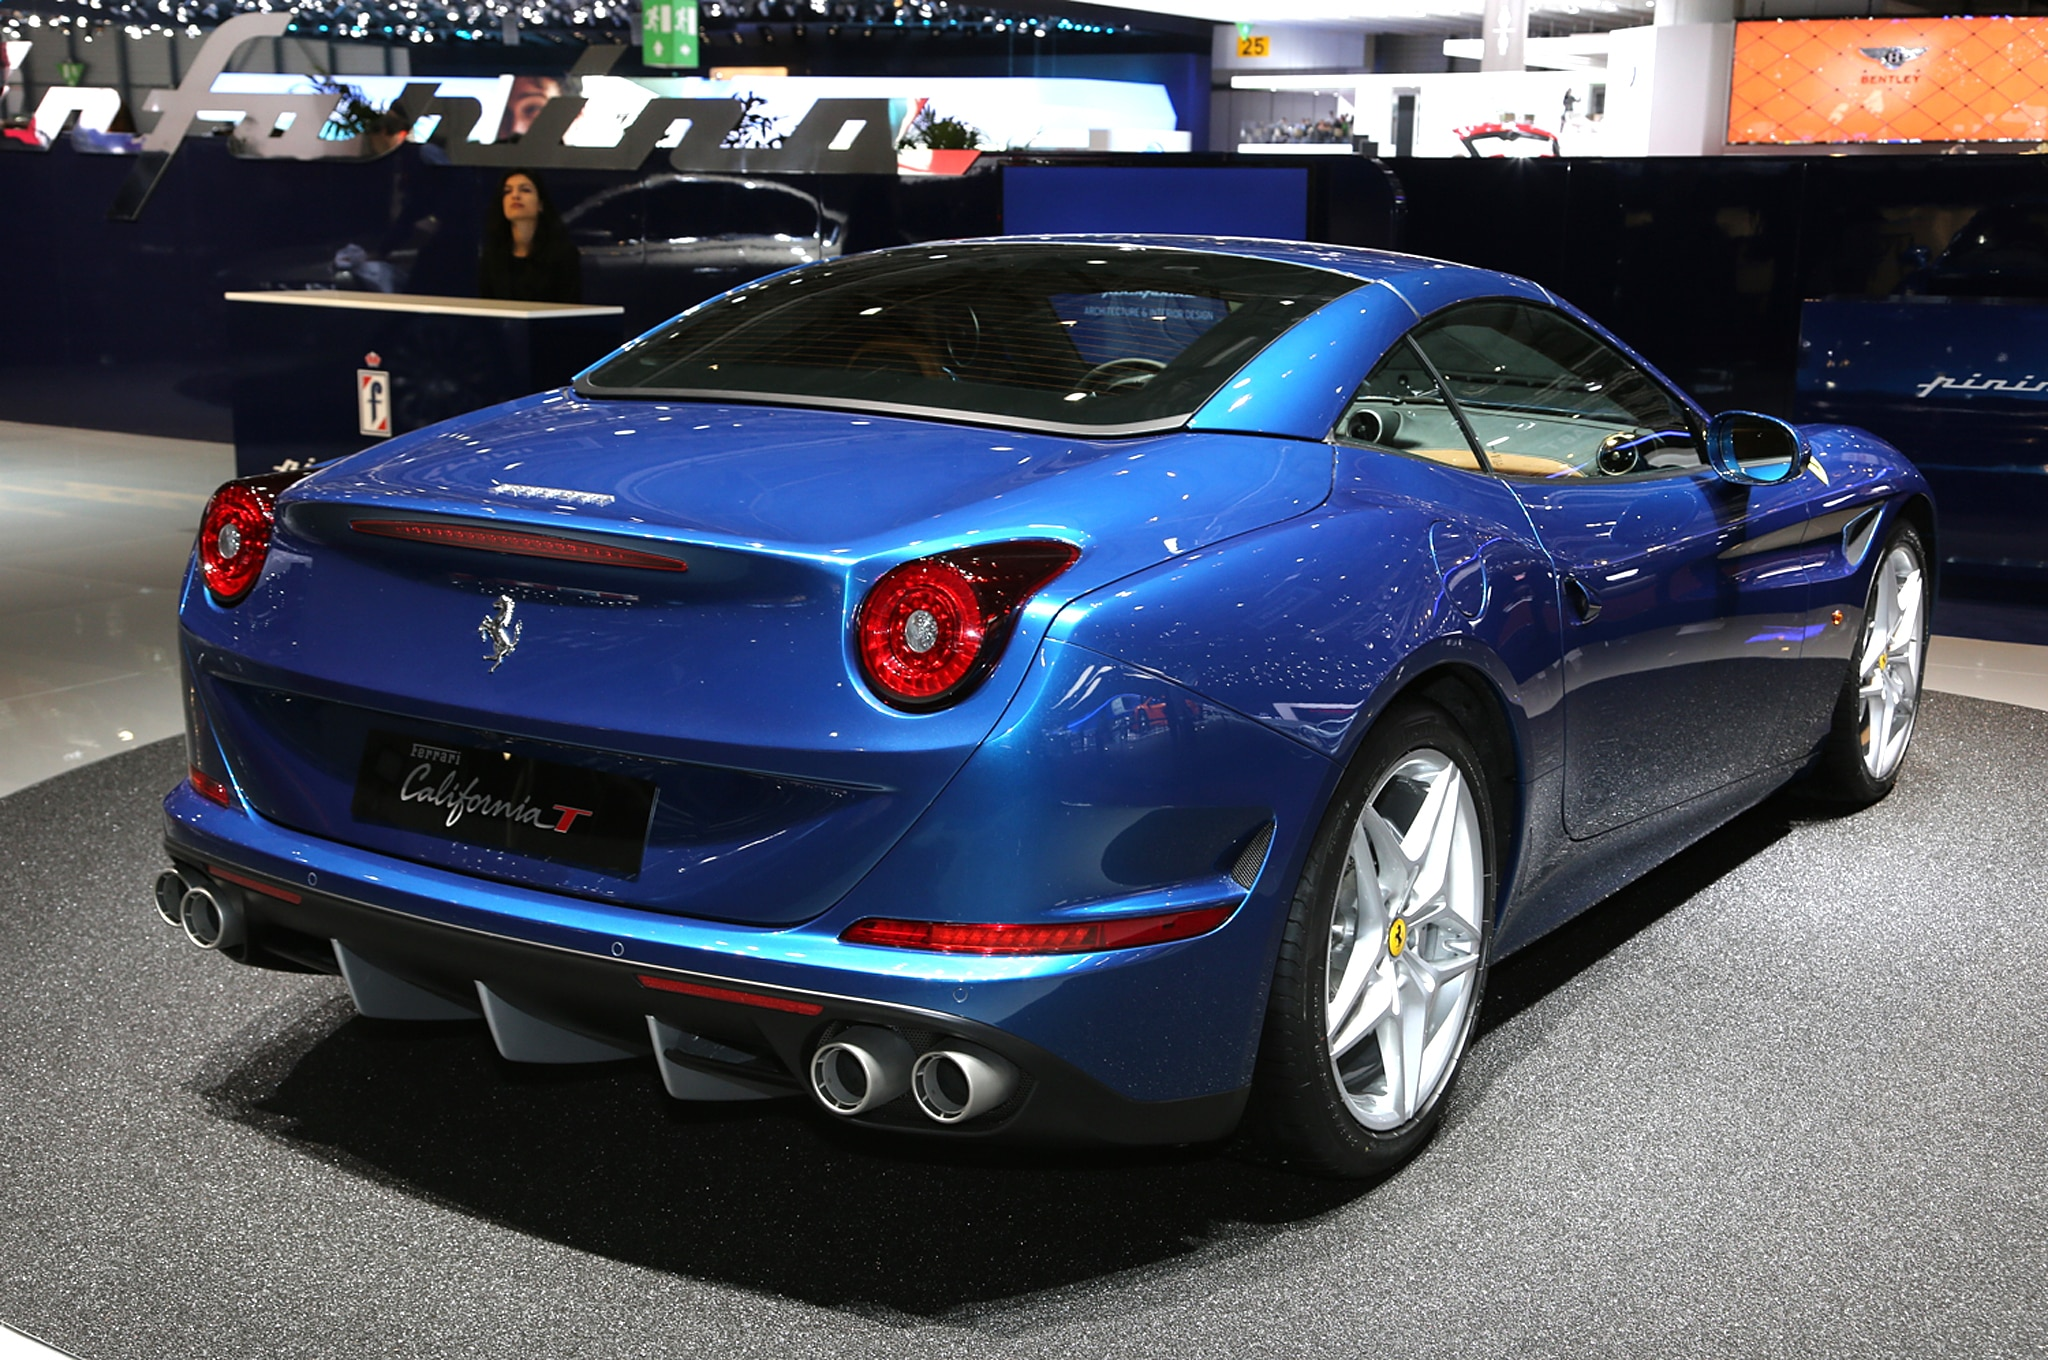 2016 ferrari california t adds handling speciale package. Black Bedroom Furniture Sets. Home Design Ideas